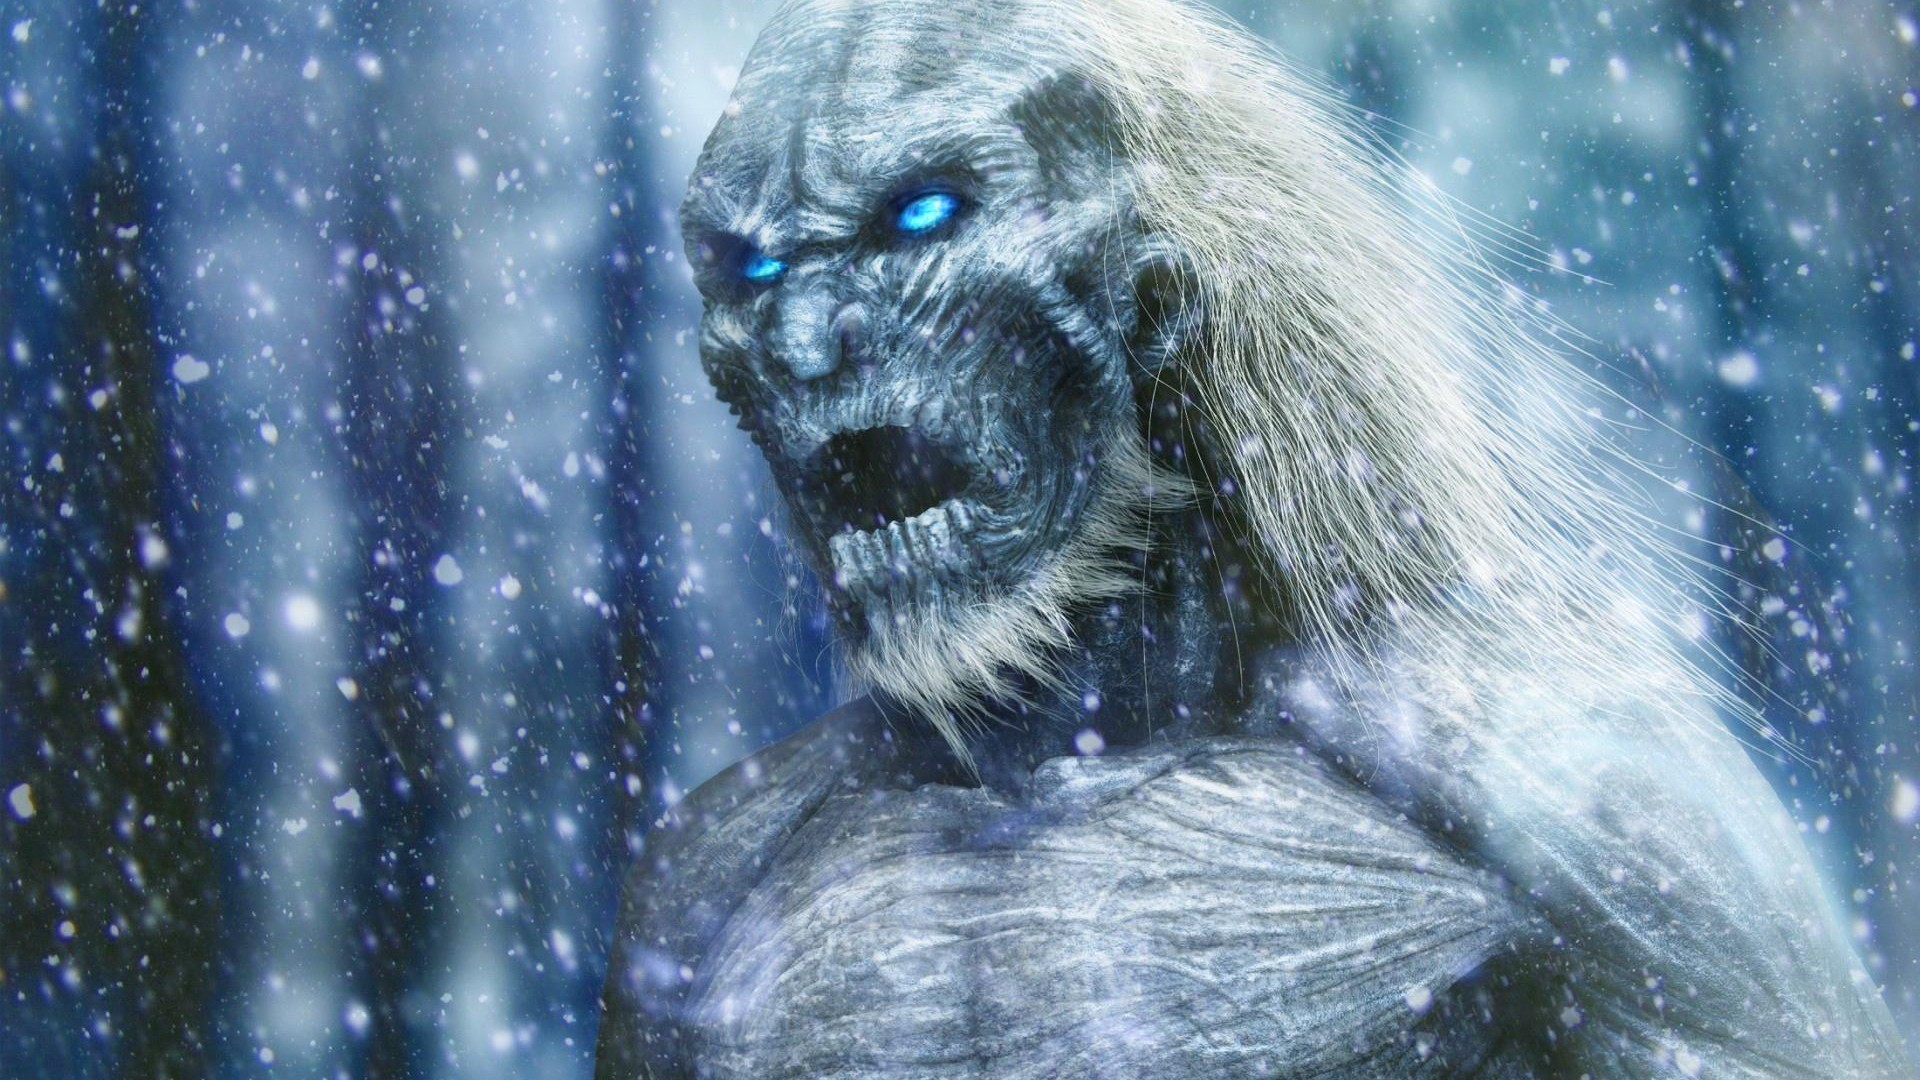 Hd Wallpapers Backgrounds For Game Of Thrones Free For: Game Of Thrones White Walkers Wallpaper